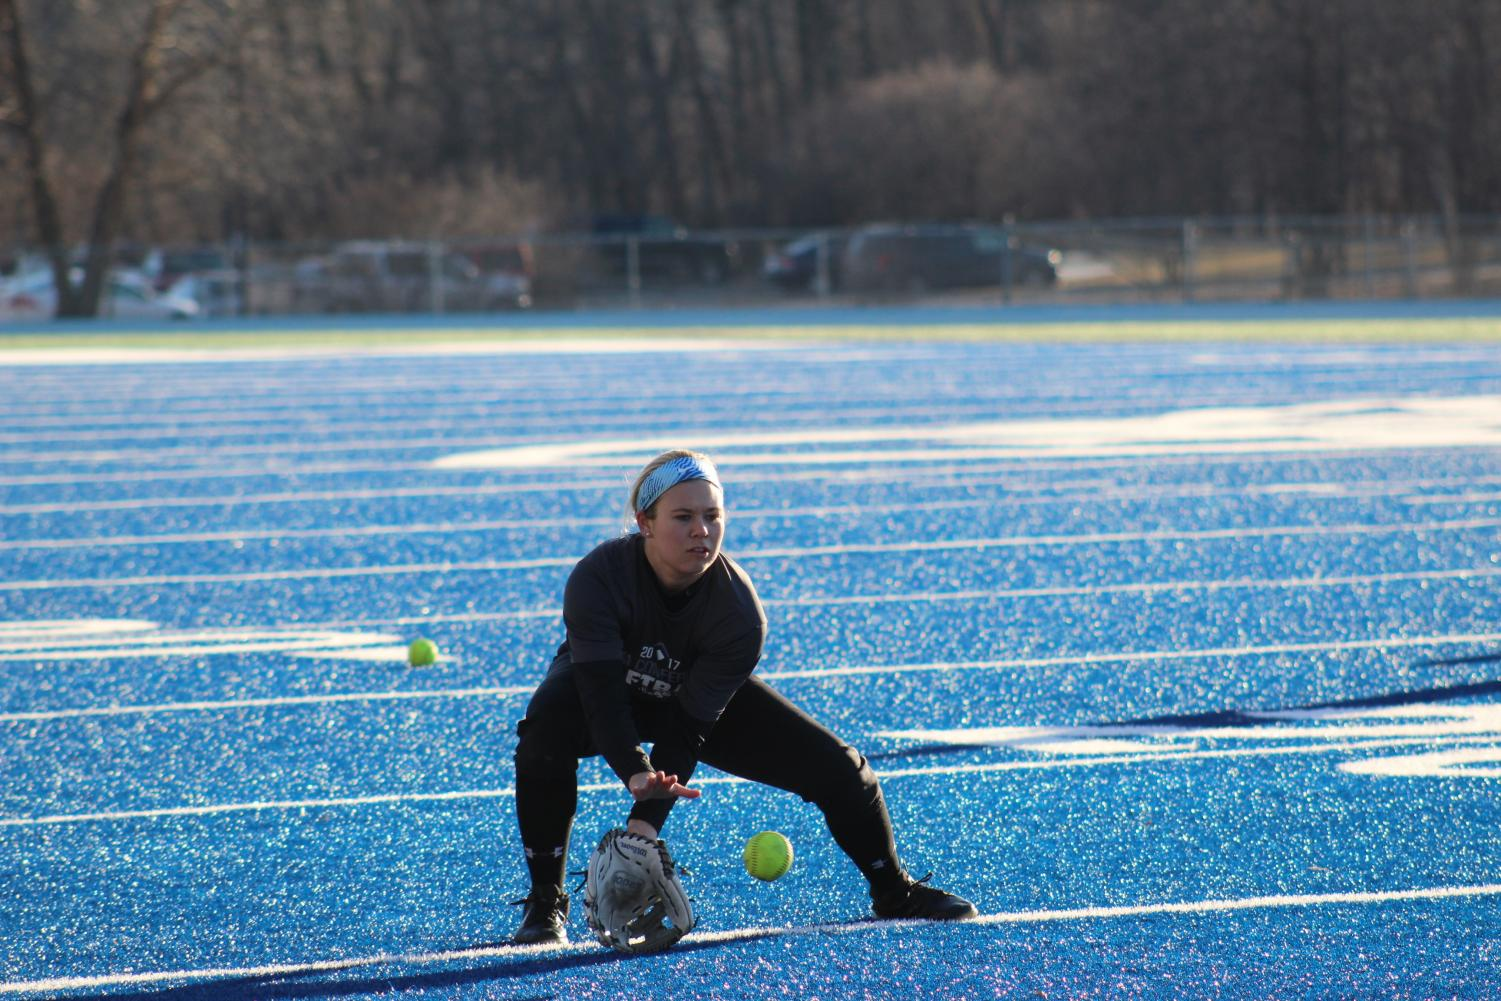 Paige Timmerman ('20) catches a ground ball.